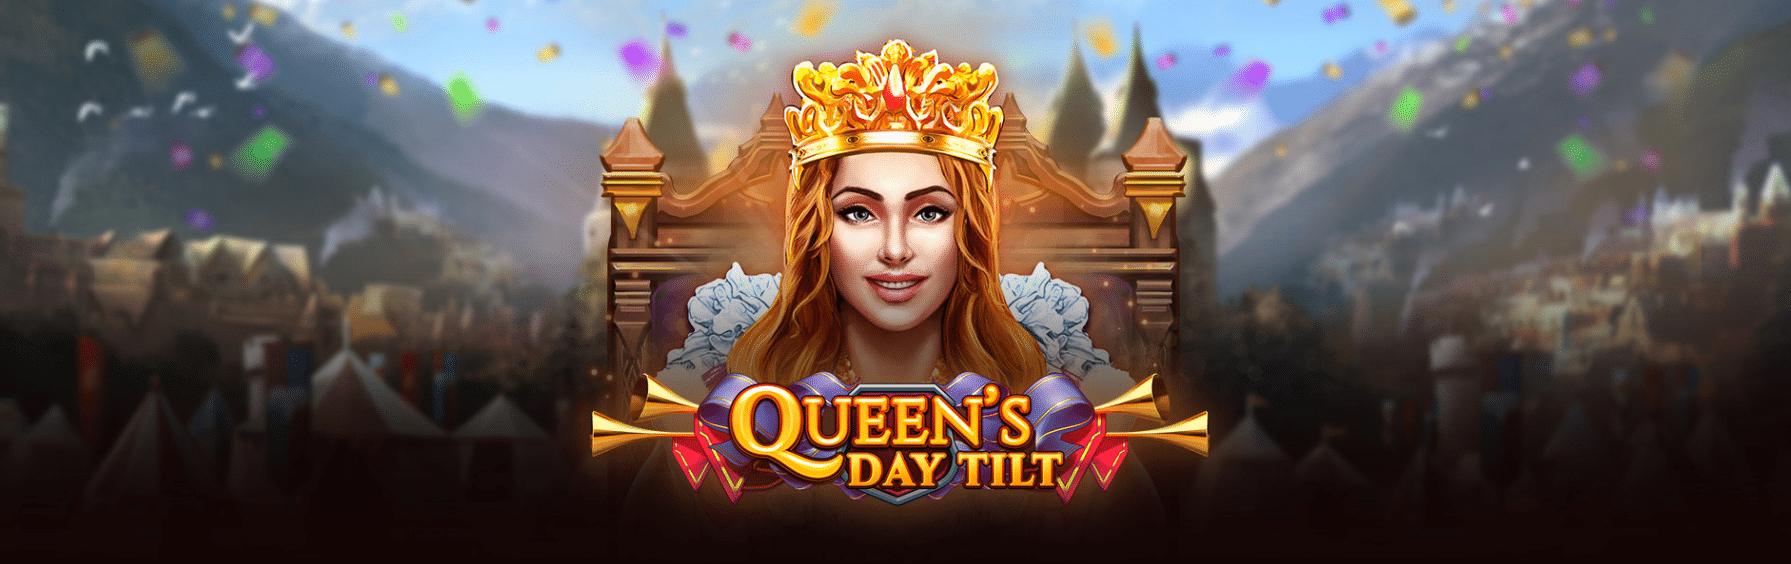 Veckans slotsnytt: Queen's Day Tilt & Shogun of Time